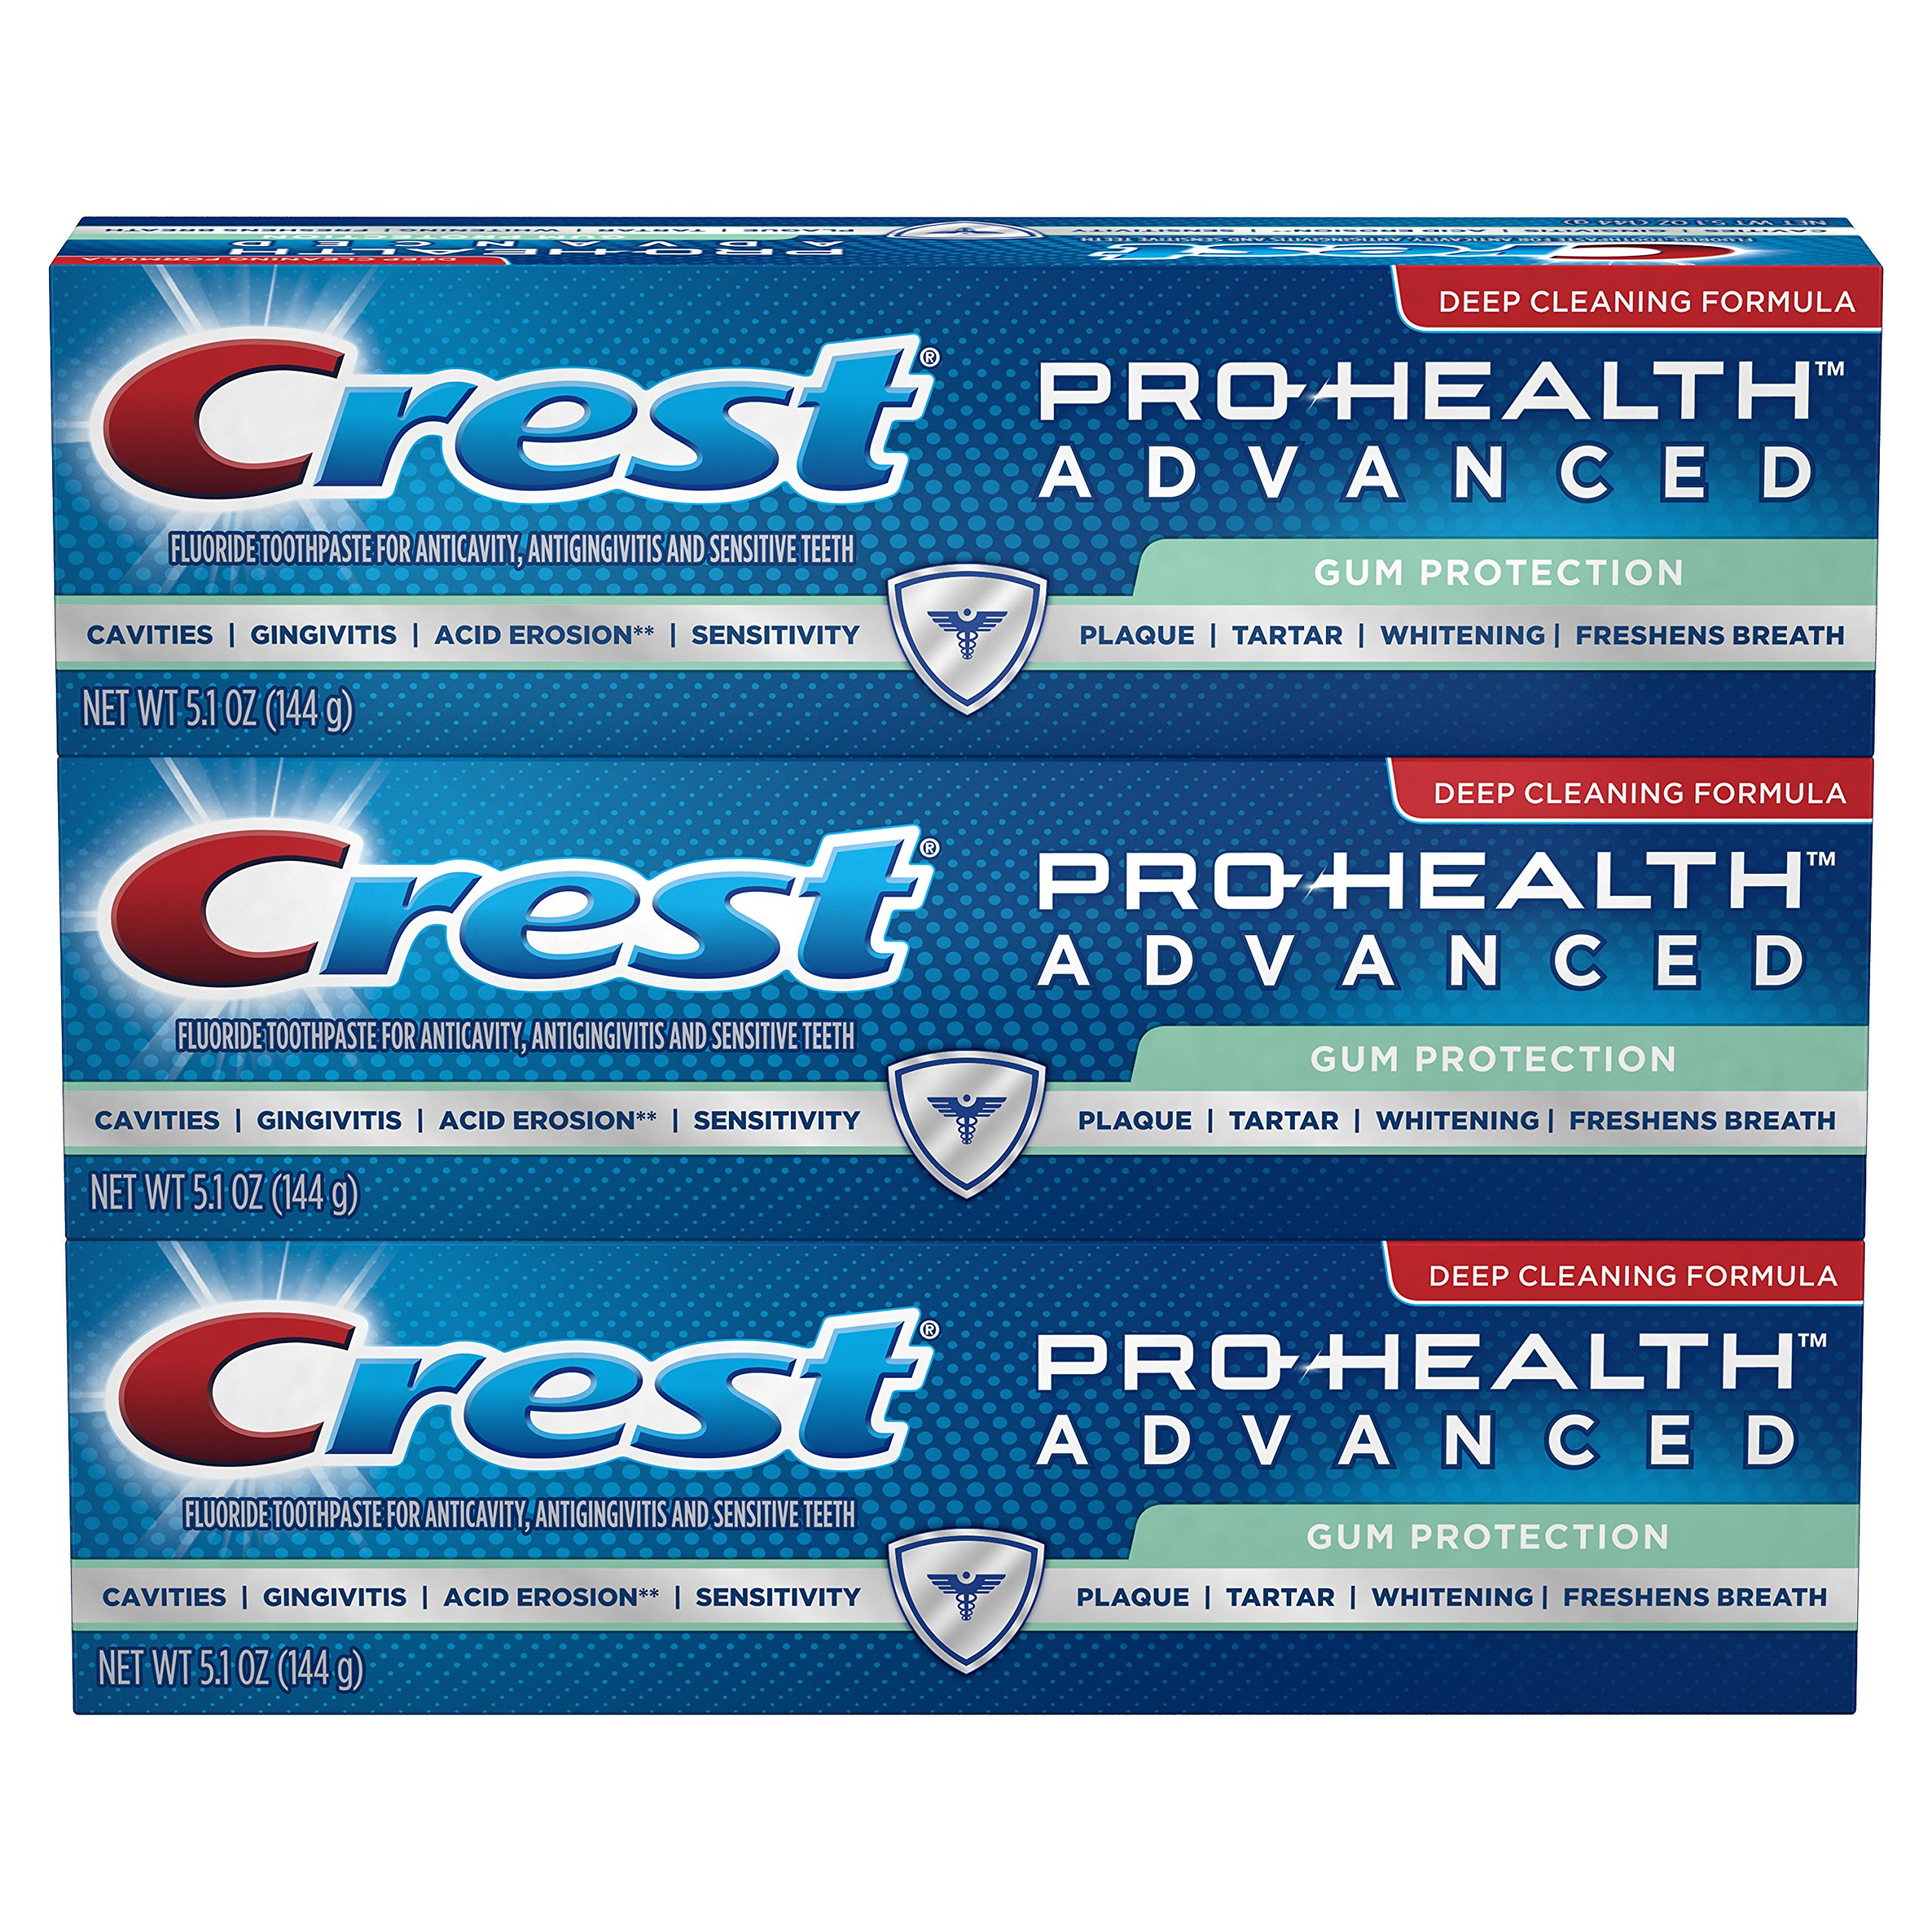 Crest Pro-Health Advanced Toothpaste, Gum Protection, 5.1 oz, Pack of 3, (Cap May Vary Twist off or Flip Cap)